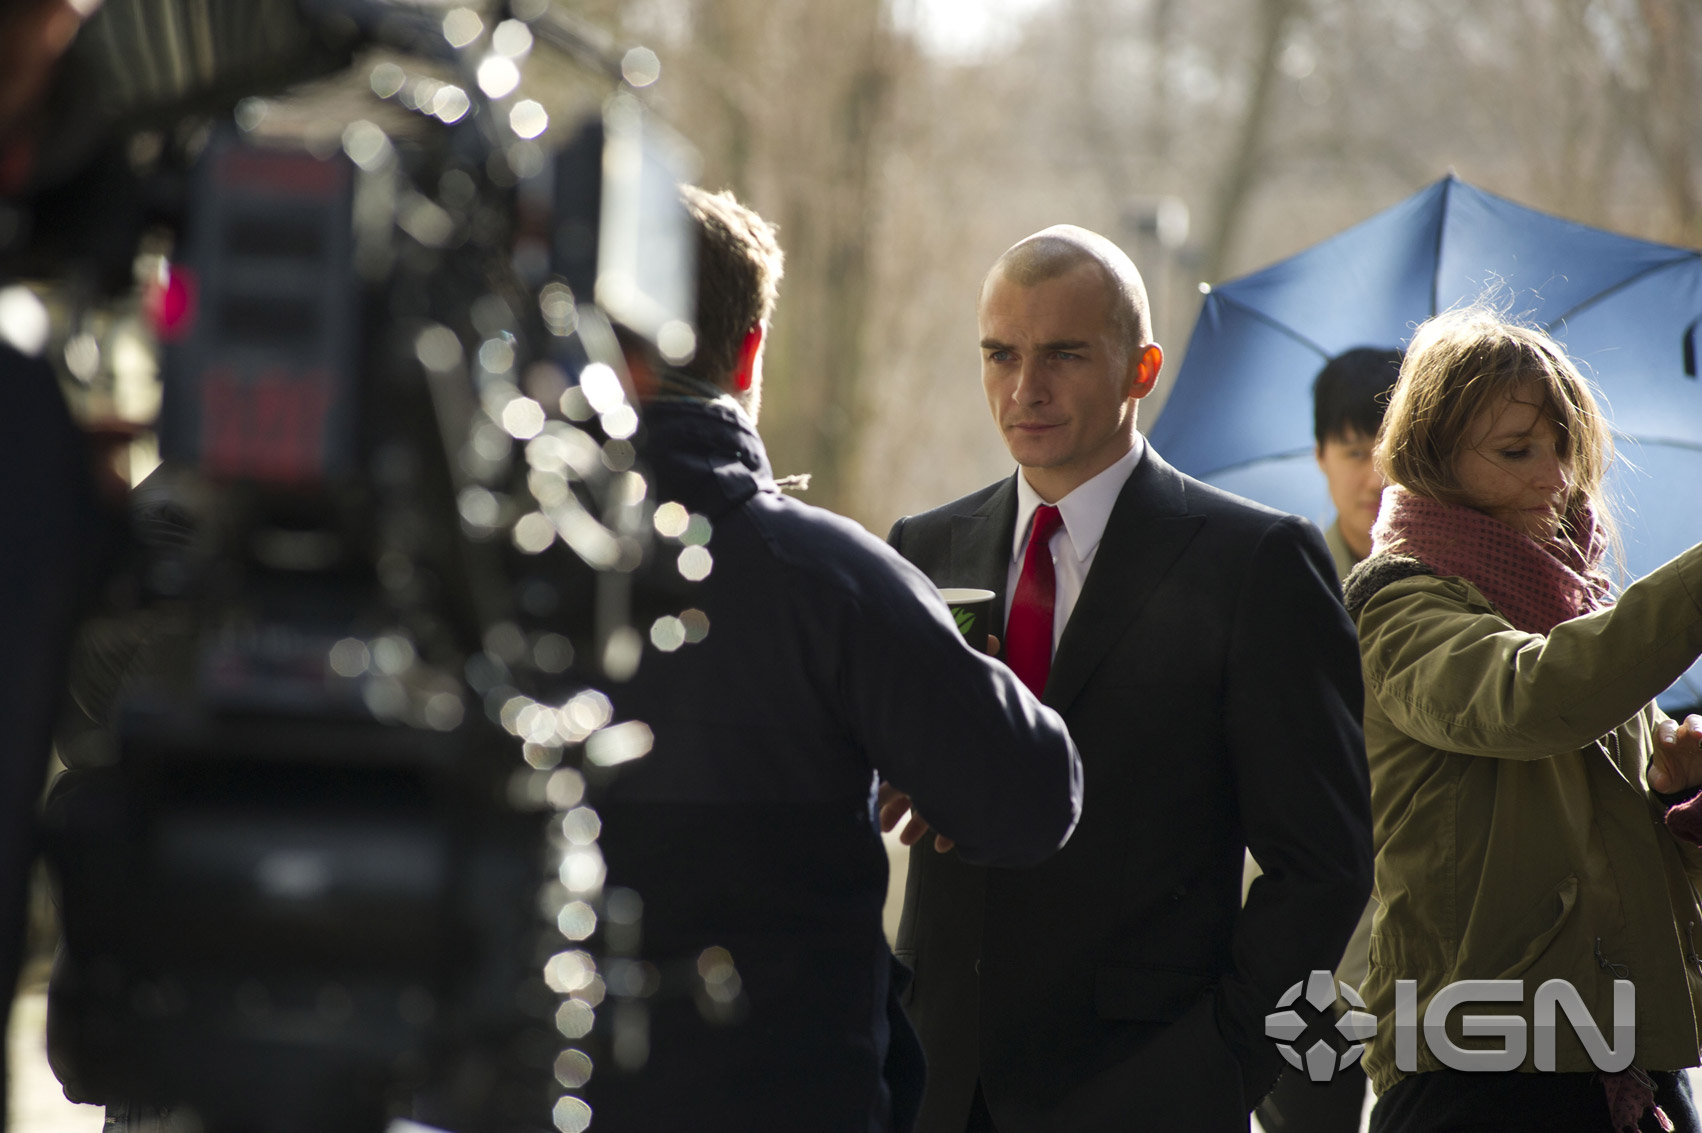 first agent 47 image released as hitman reboot nears. Black Bedroom Furniture Sets. Home Design Ideas